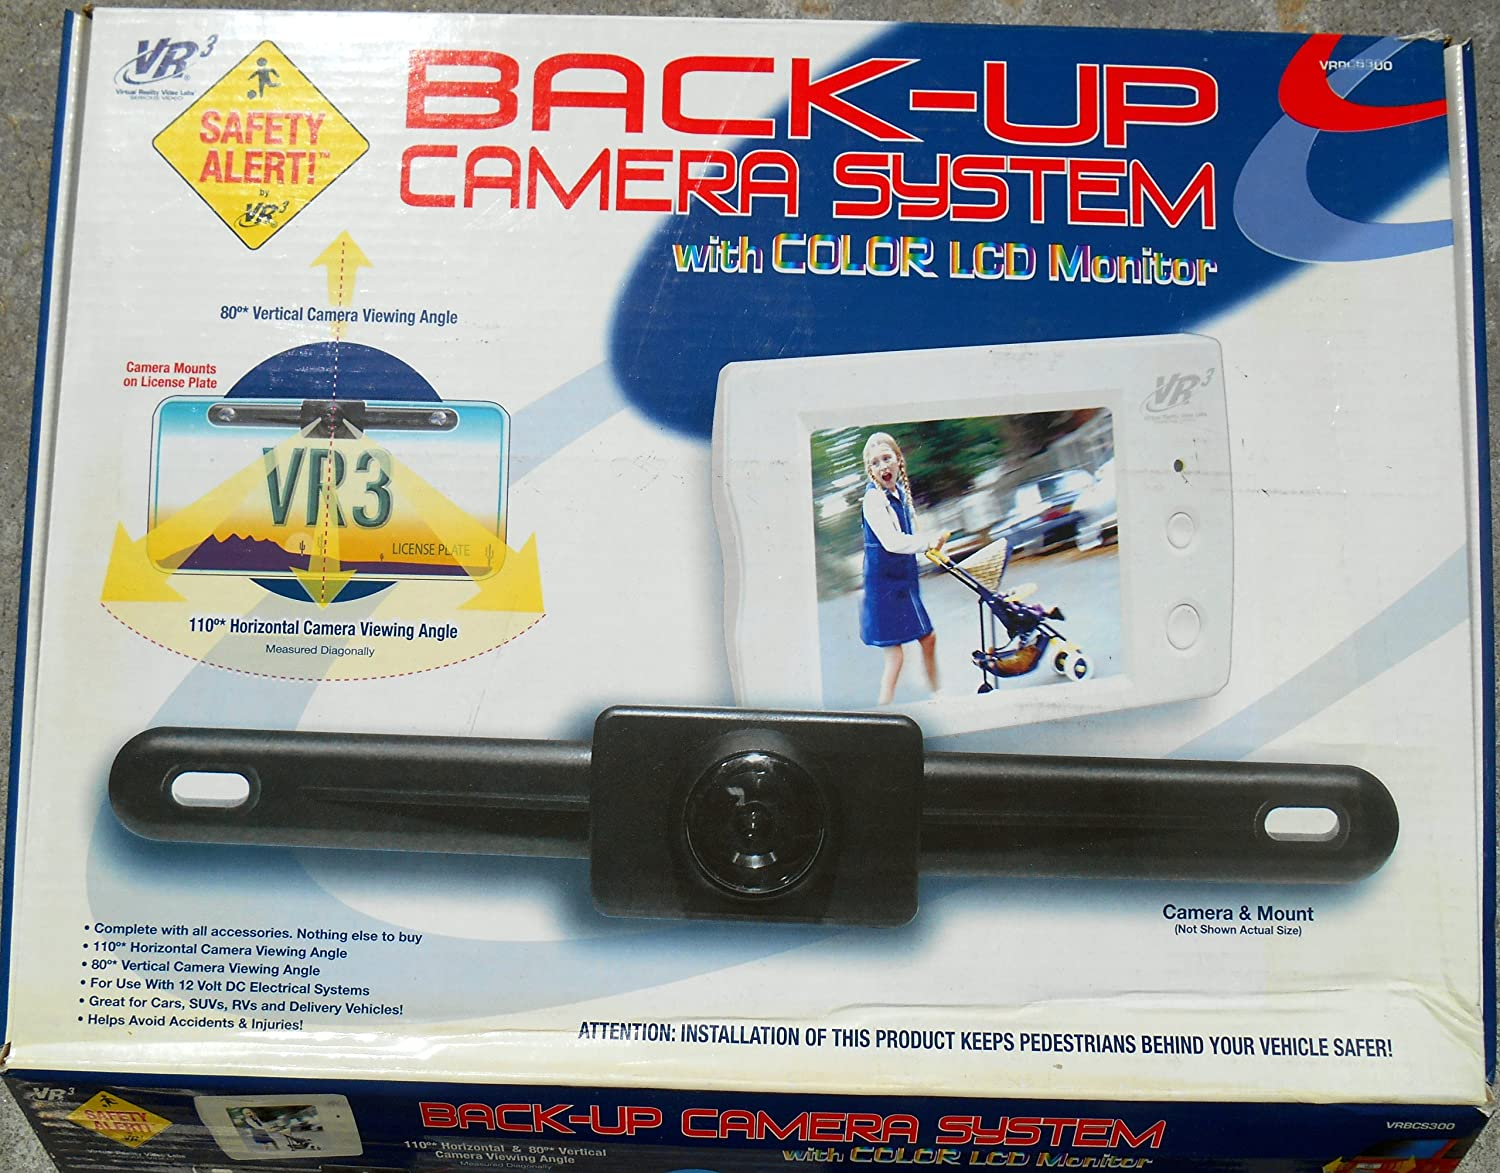 91OAmrFSLdL._SL1500_ amazon com vr3 vrbcs300 back up camera with 2 5 inch lcd color vrbcs300w wiring diagram at creativeand.co